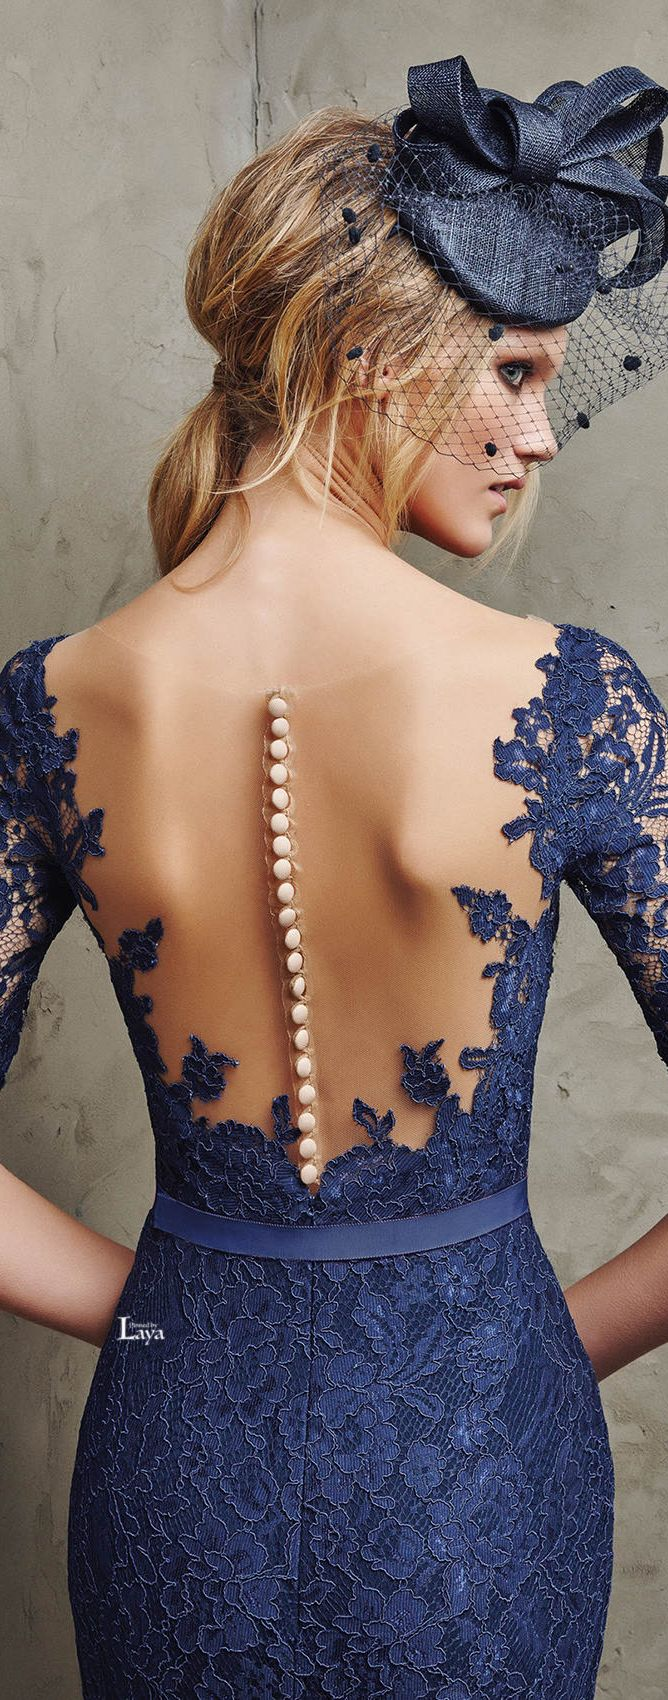 Pronovias 2016 Cocktail Dresses. Blue lace backless. women fashion outfit clothing style apparel @roressclothes closet ideas